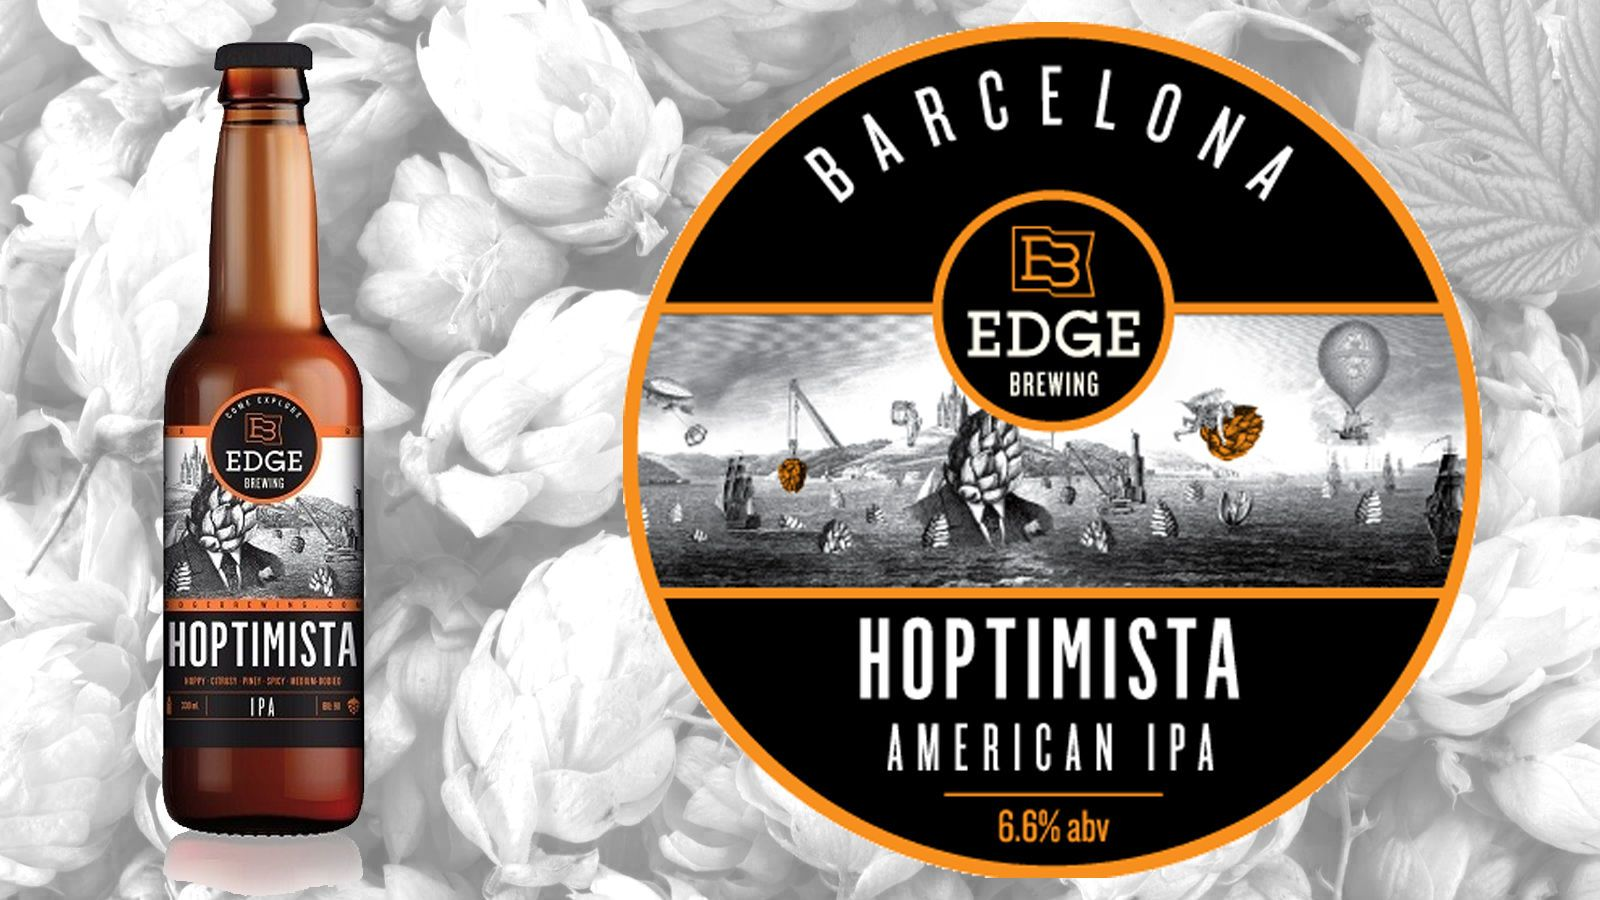 Hoptimista Seasonal Beer Special Offer at Four Points Barcelona